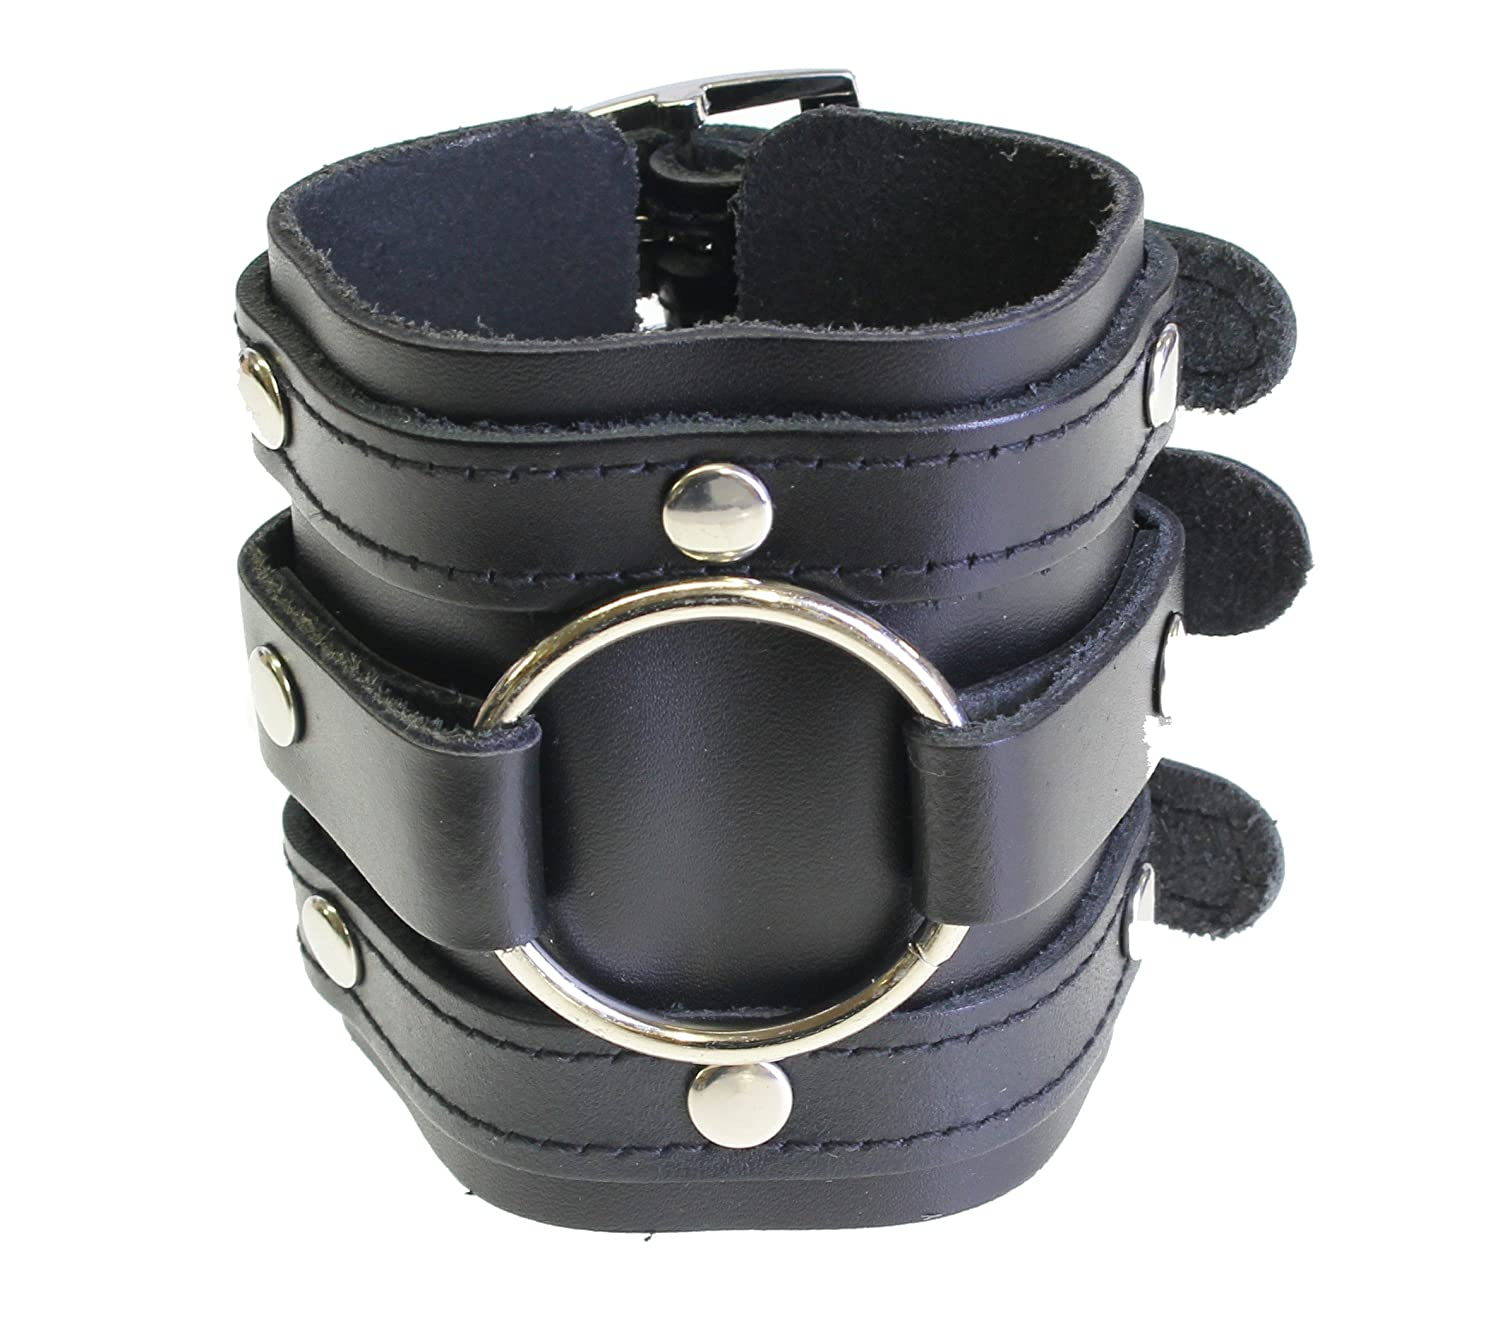 Pirate Wide Black Leather Triple Strap Wristband Cuff